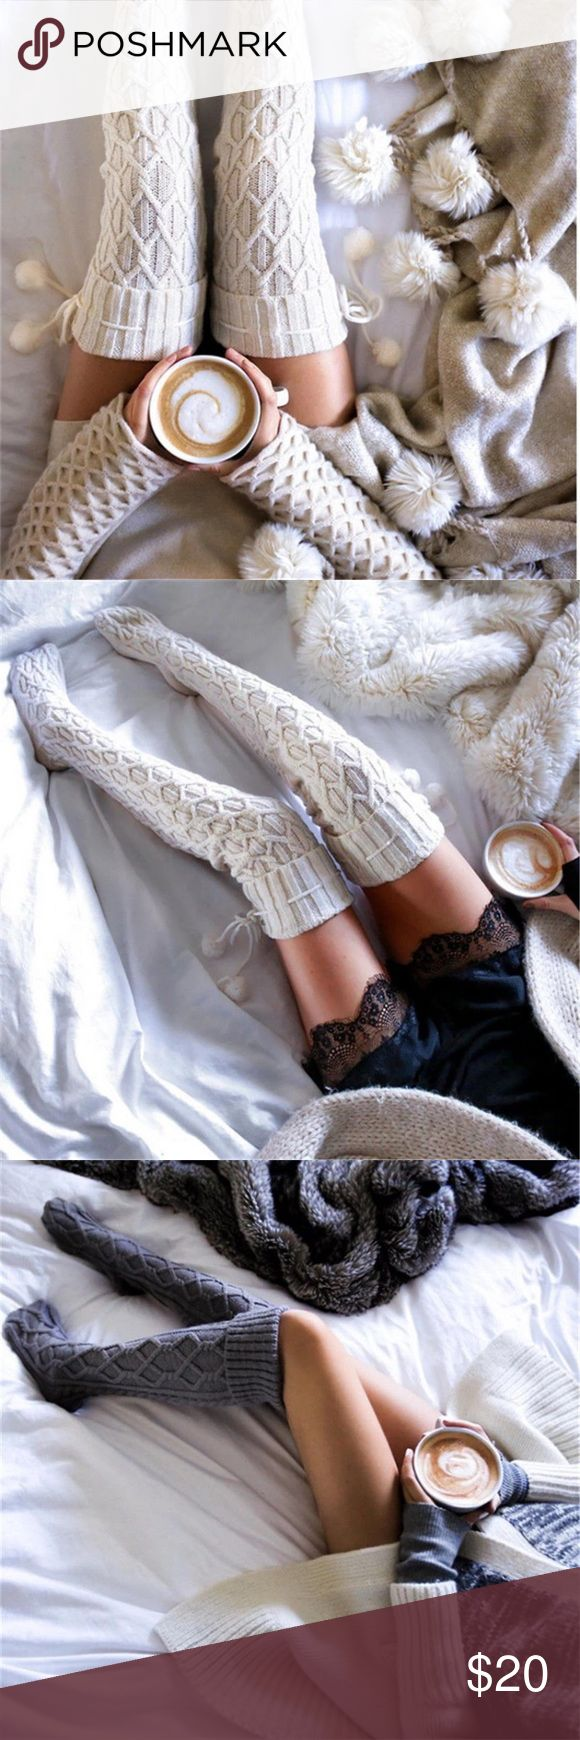 🌟❄️COMING SOON❄️🌟 NOT YET AVAILABLE 🌟 Gorgeous thick white thigh high socks. Super cozy and comfortable. Pom. Fuzzy. Perfect for lounging around in and to keep you warm. Not from FP. Also available in grey! Free People Accessories Hosiery & Socks